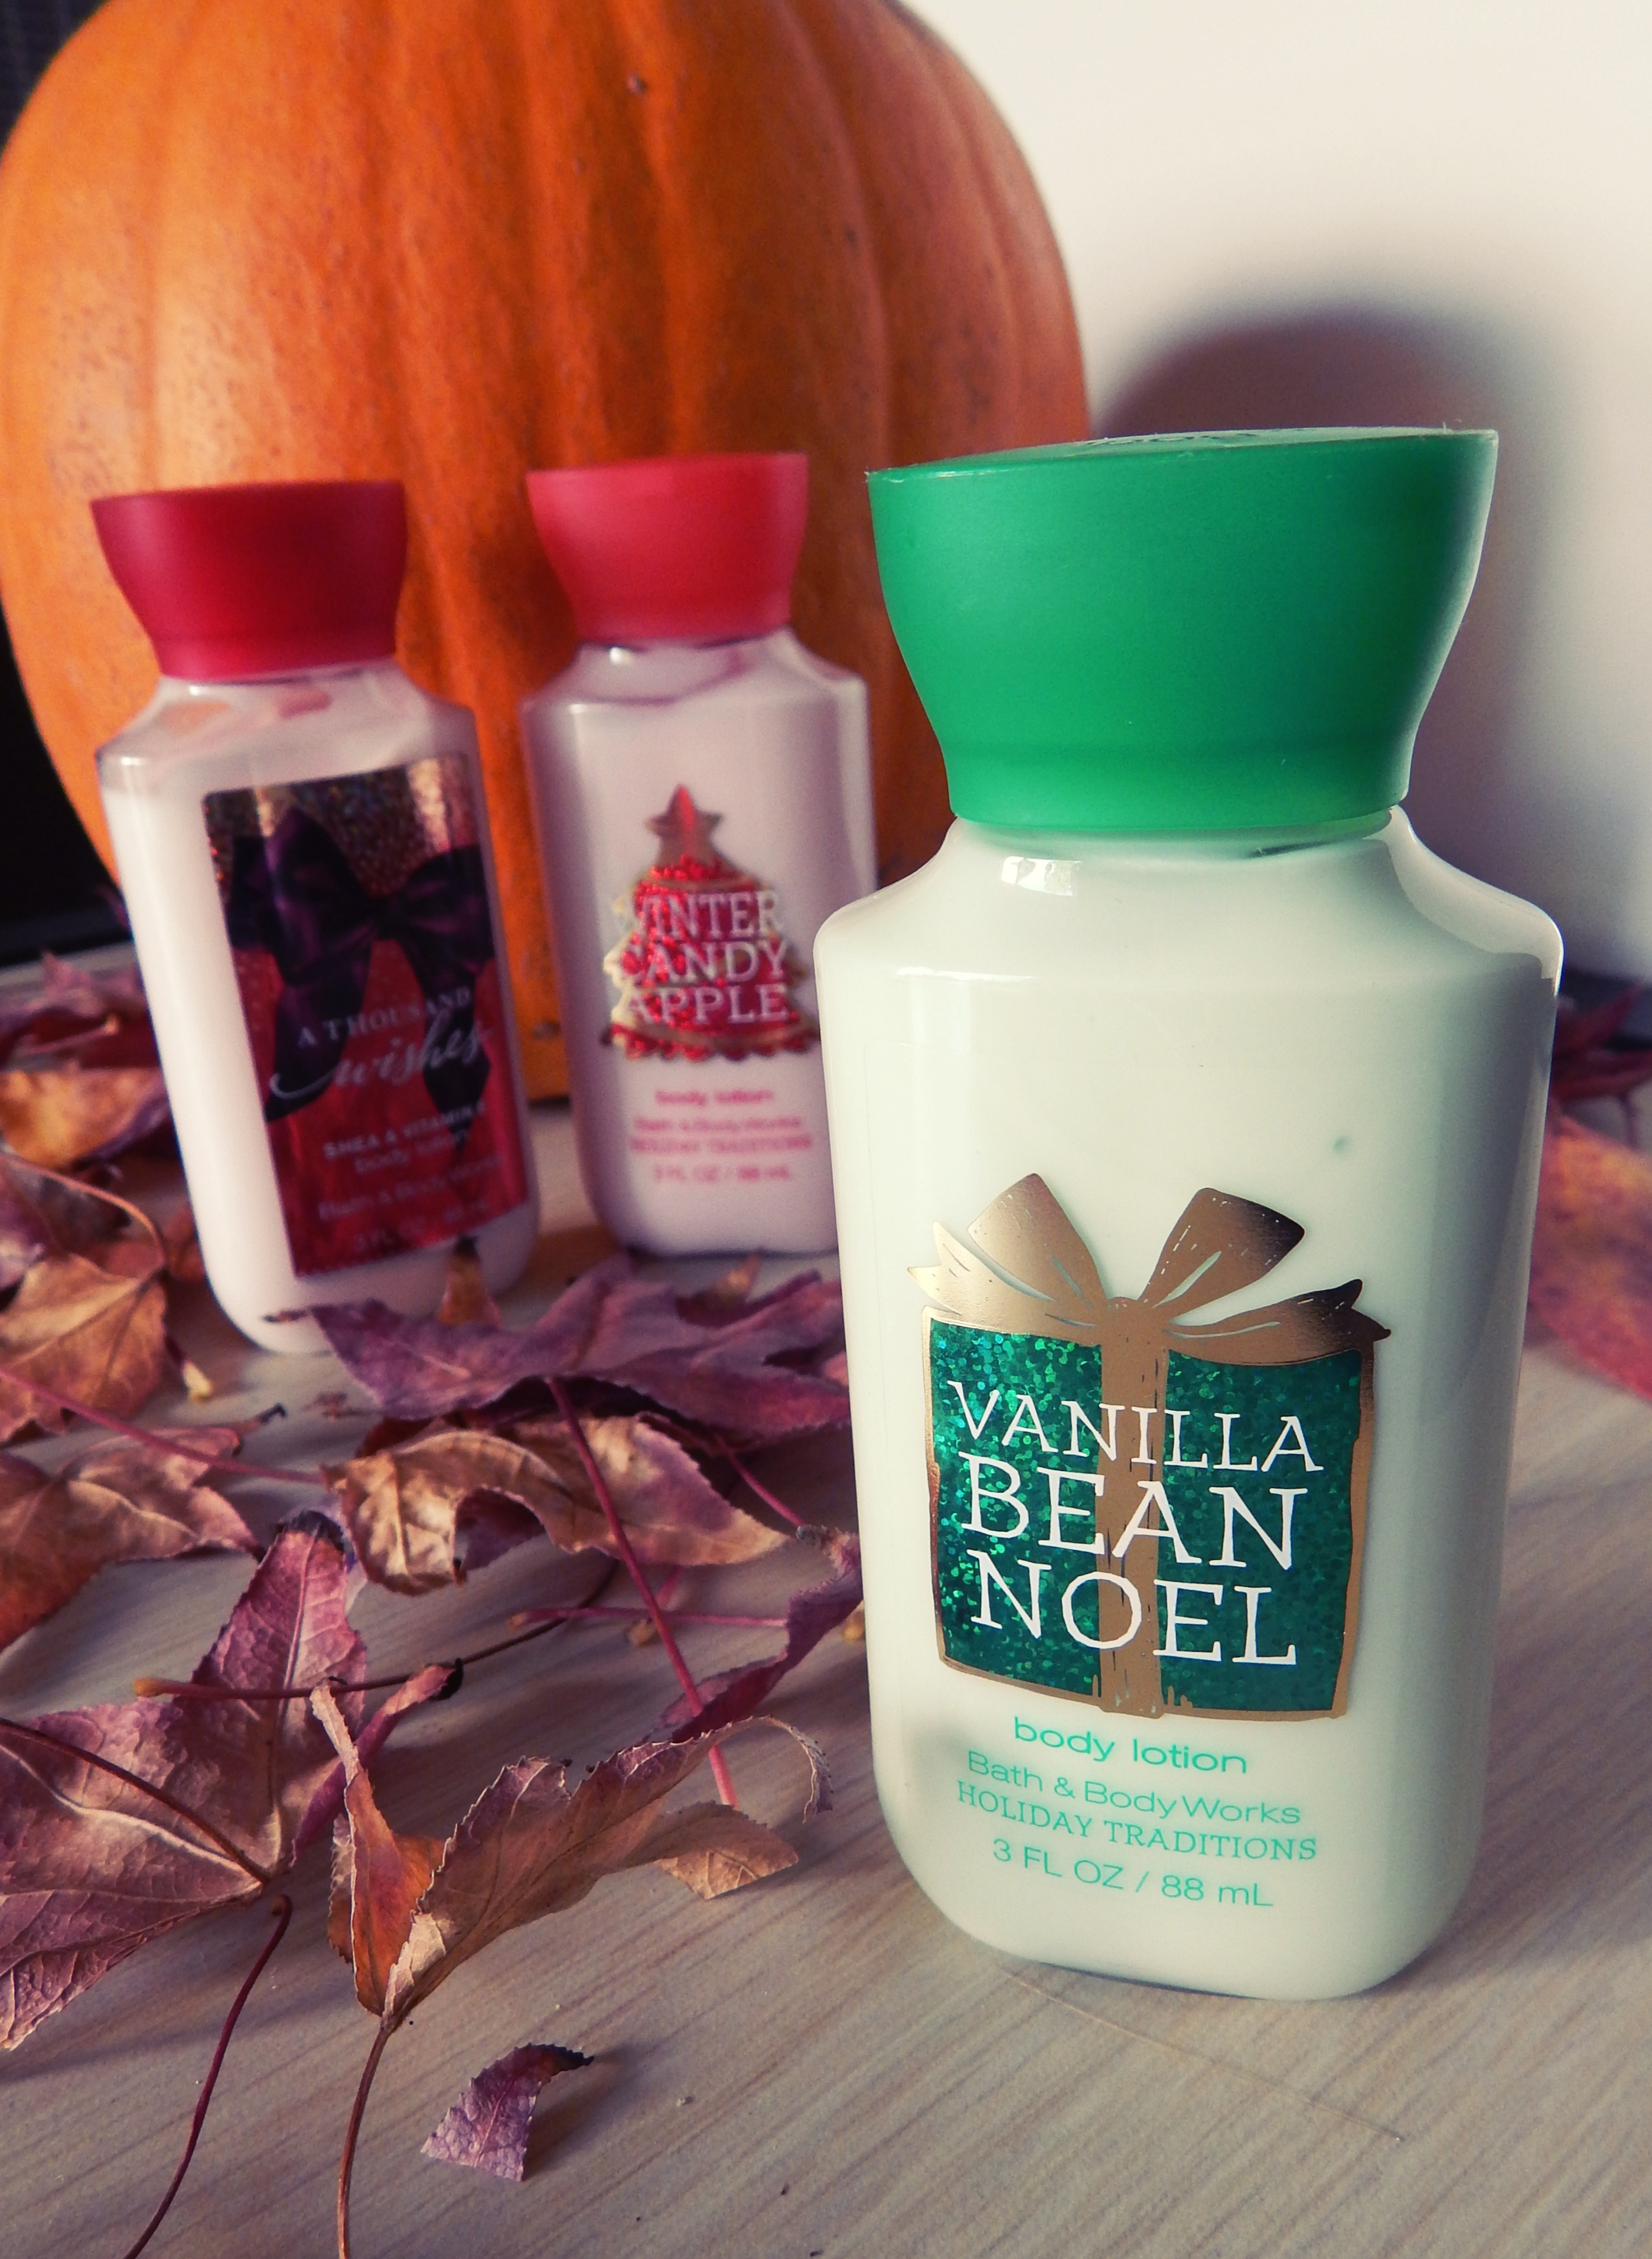 Bath and body works holiday scents - A Thousand Wishes This Scent Is Hard To Describe But It Smells Delicious It S Very Fresh And Almost Fruity Like Update I Looked Up The Ingredients And